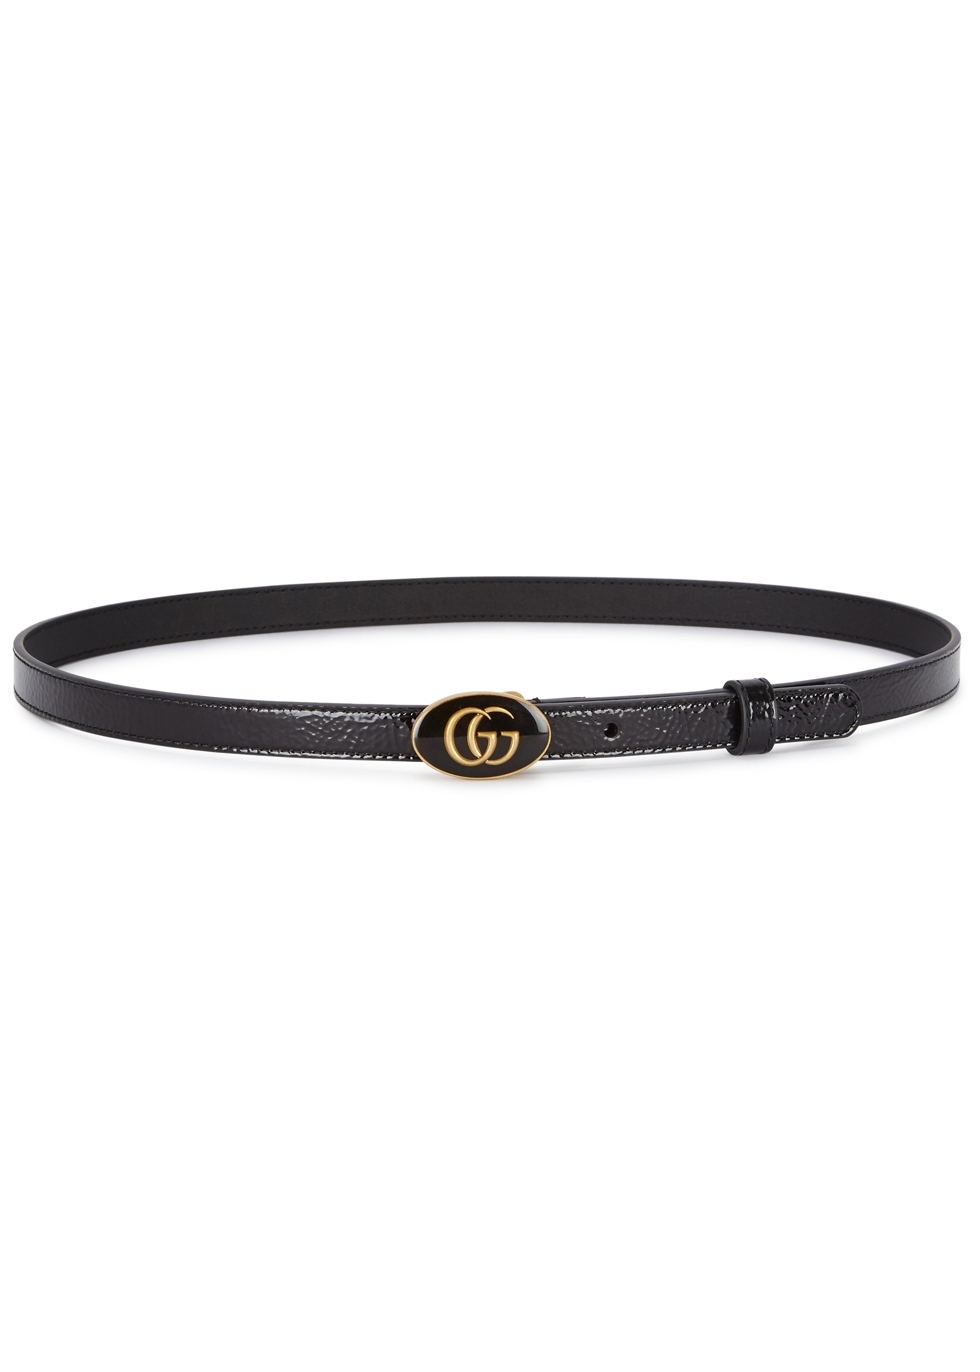 GG BLACK PATENT LEATHER BELT